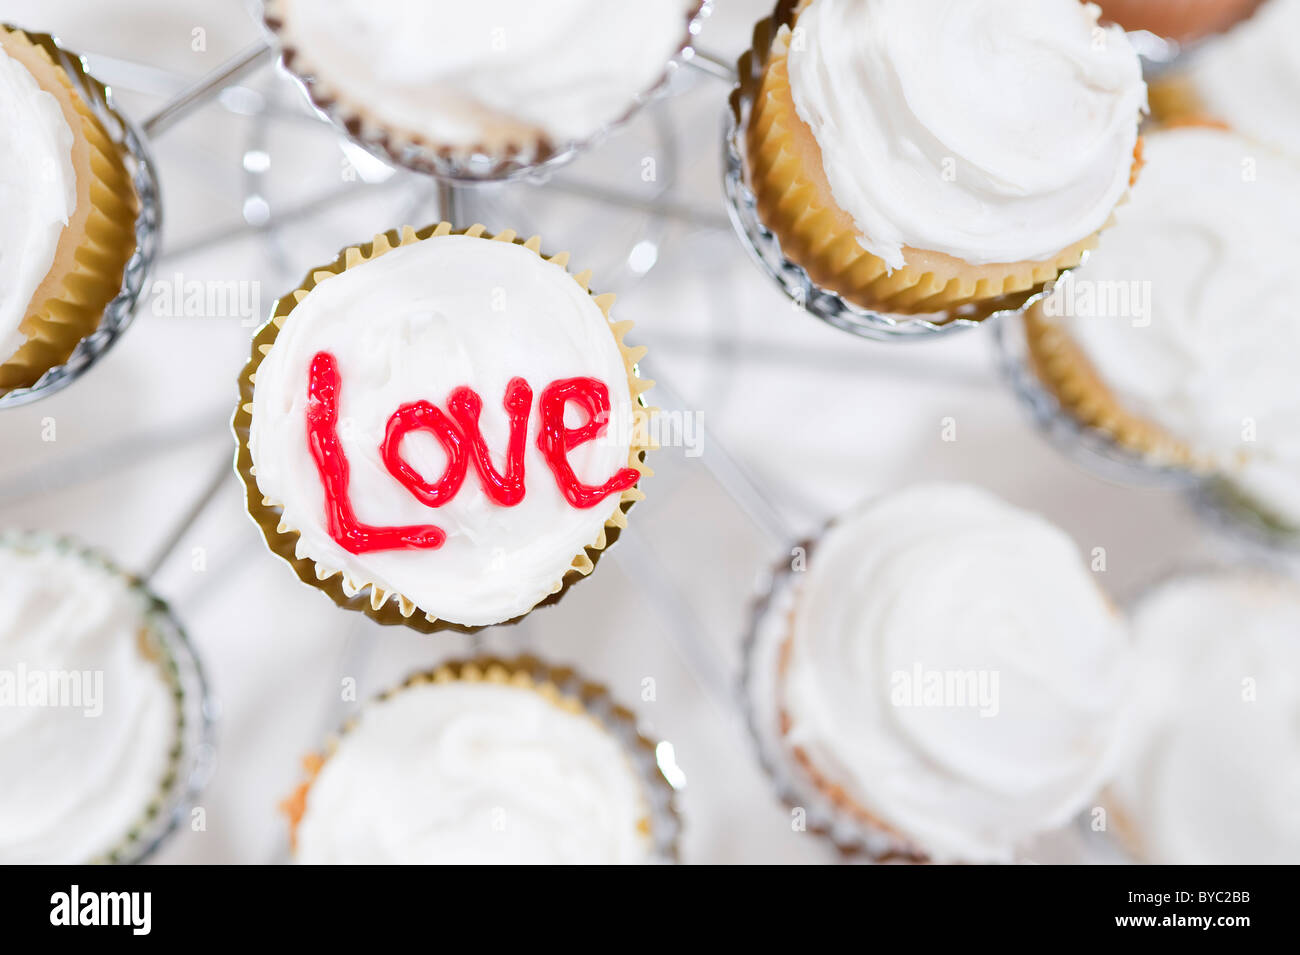 Cupcakes in holder with Love written on top - Stock Image